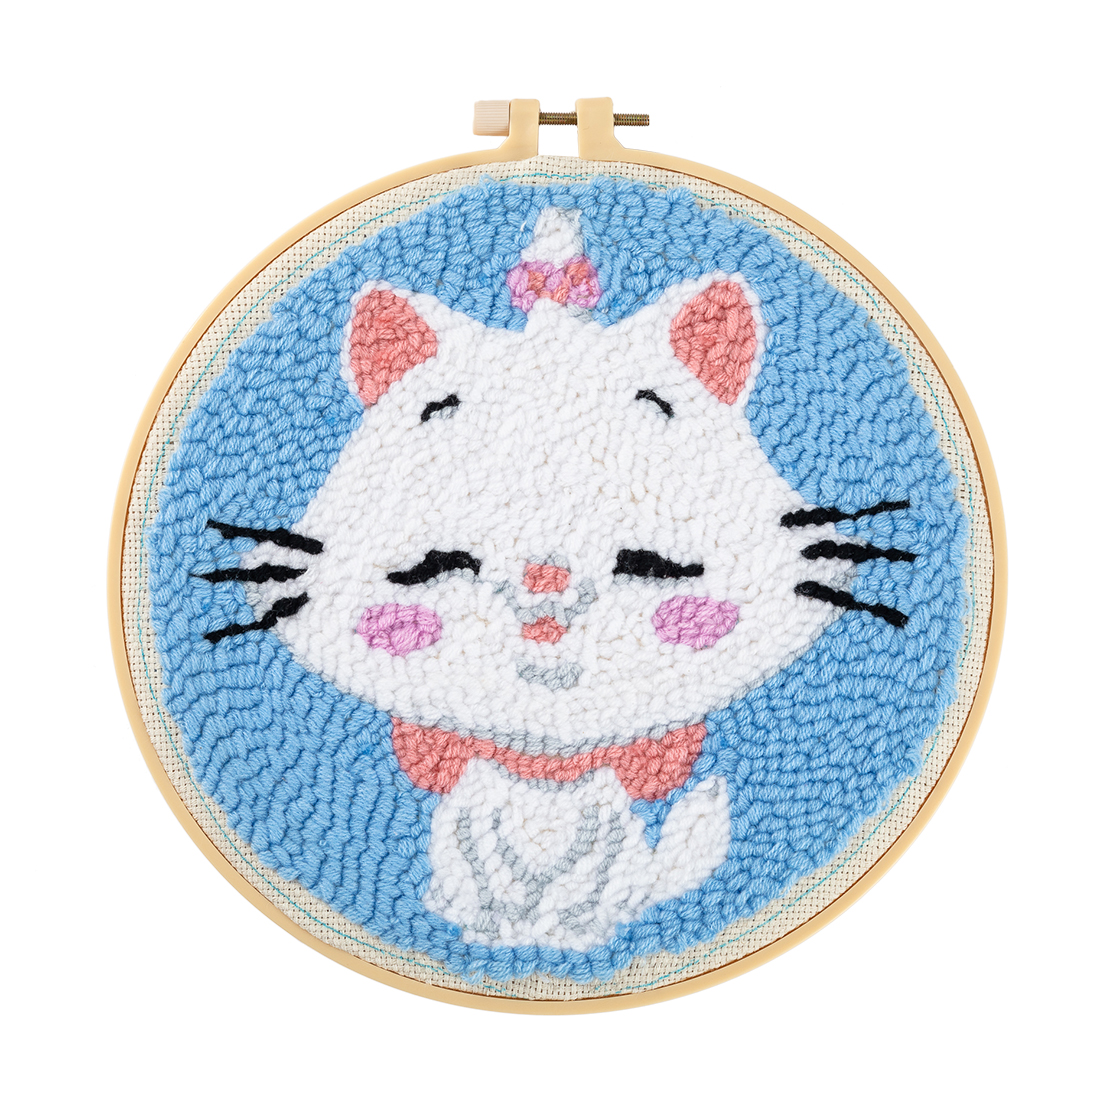 Pig HMANE Rug Hooking Kit DIY Handcraft Woolen Embroidery Knitting Kit with Punch Needle Embroidery Frame Creative Gifts for Girls